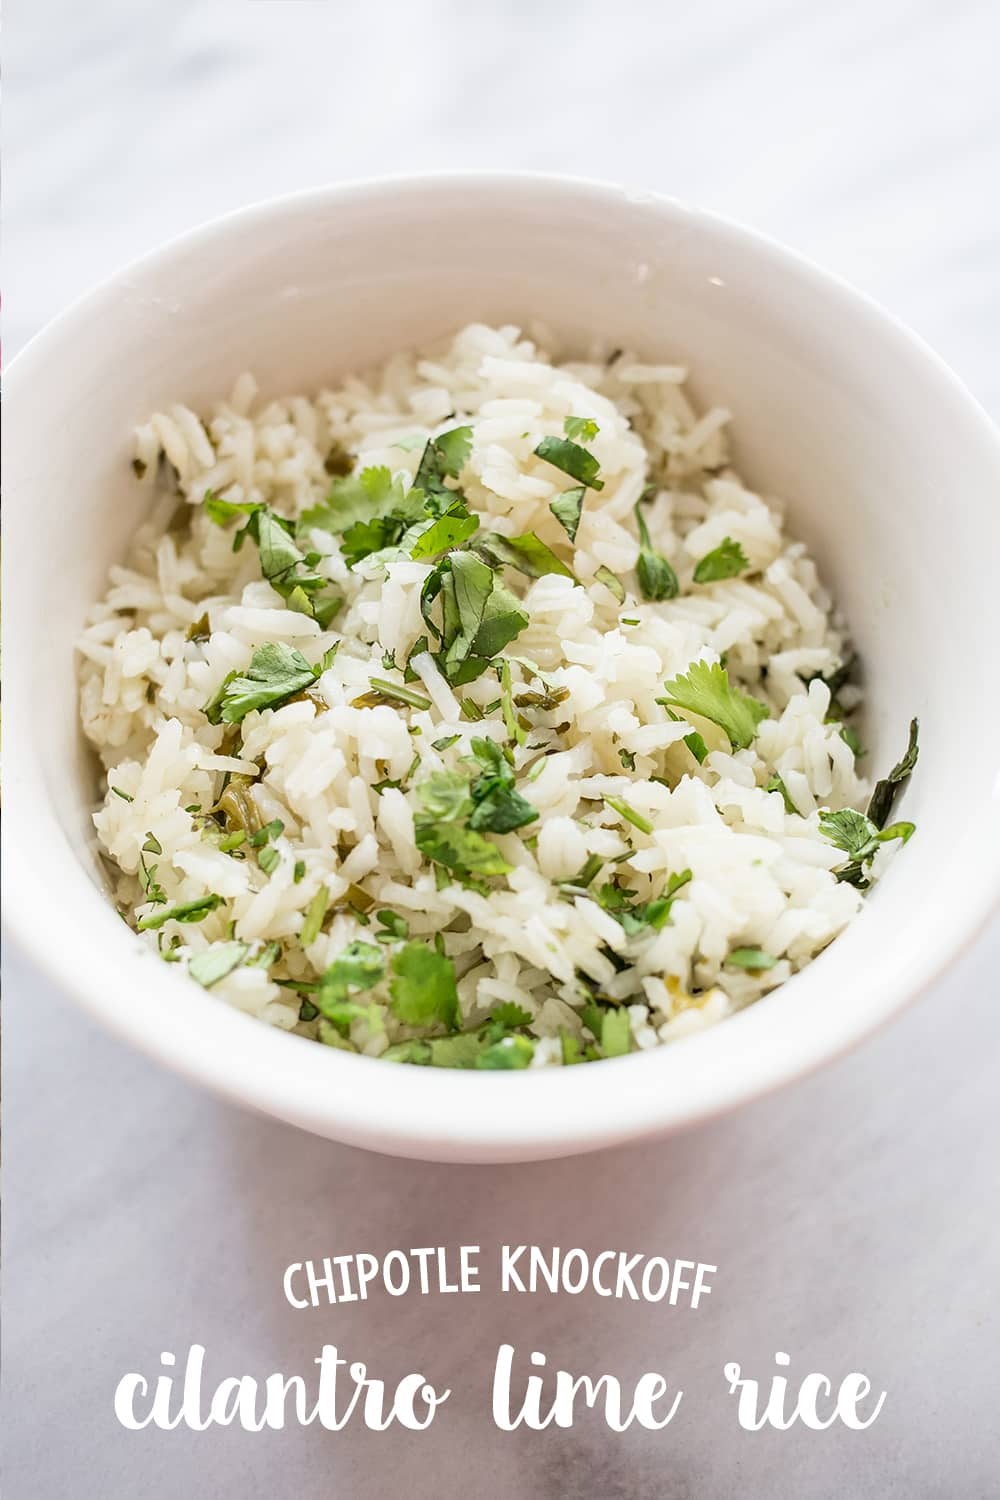 Knockoff chipotle cilantro lime rice- this is the easiest, most delicious recipe ever!